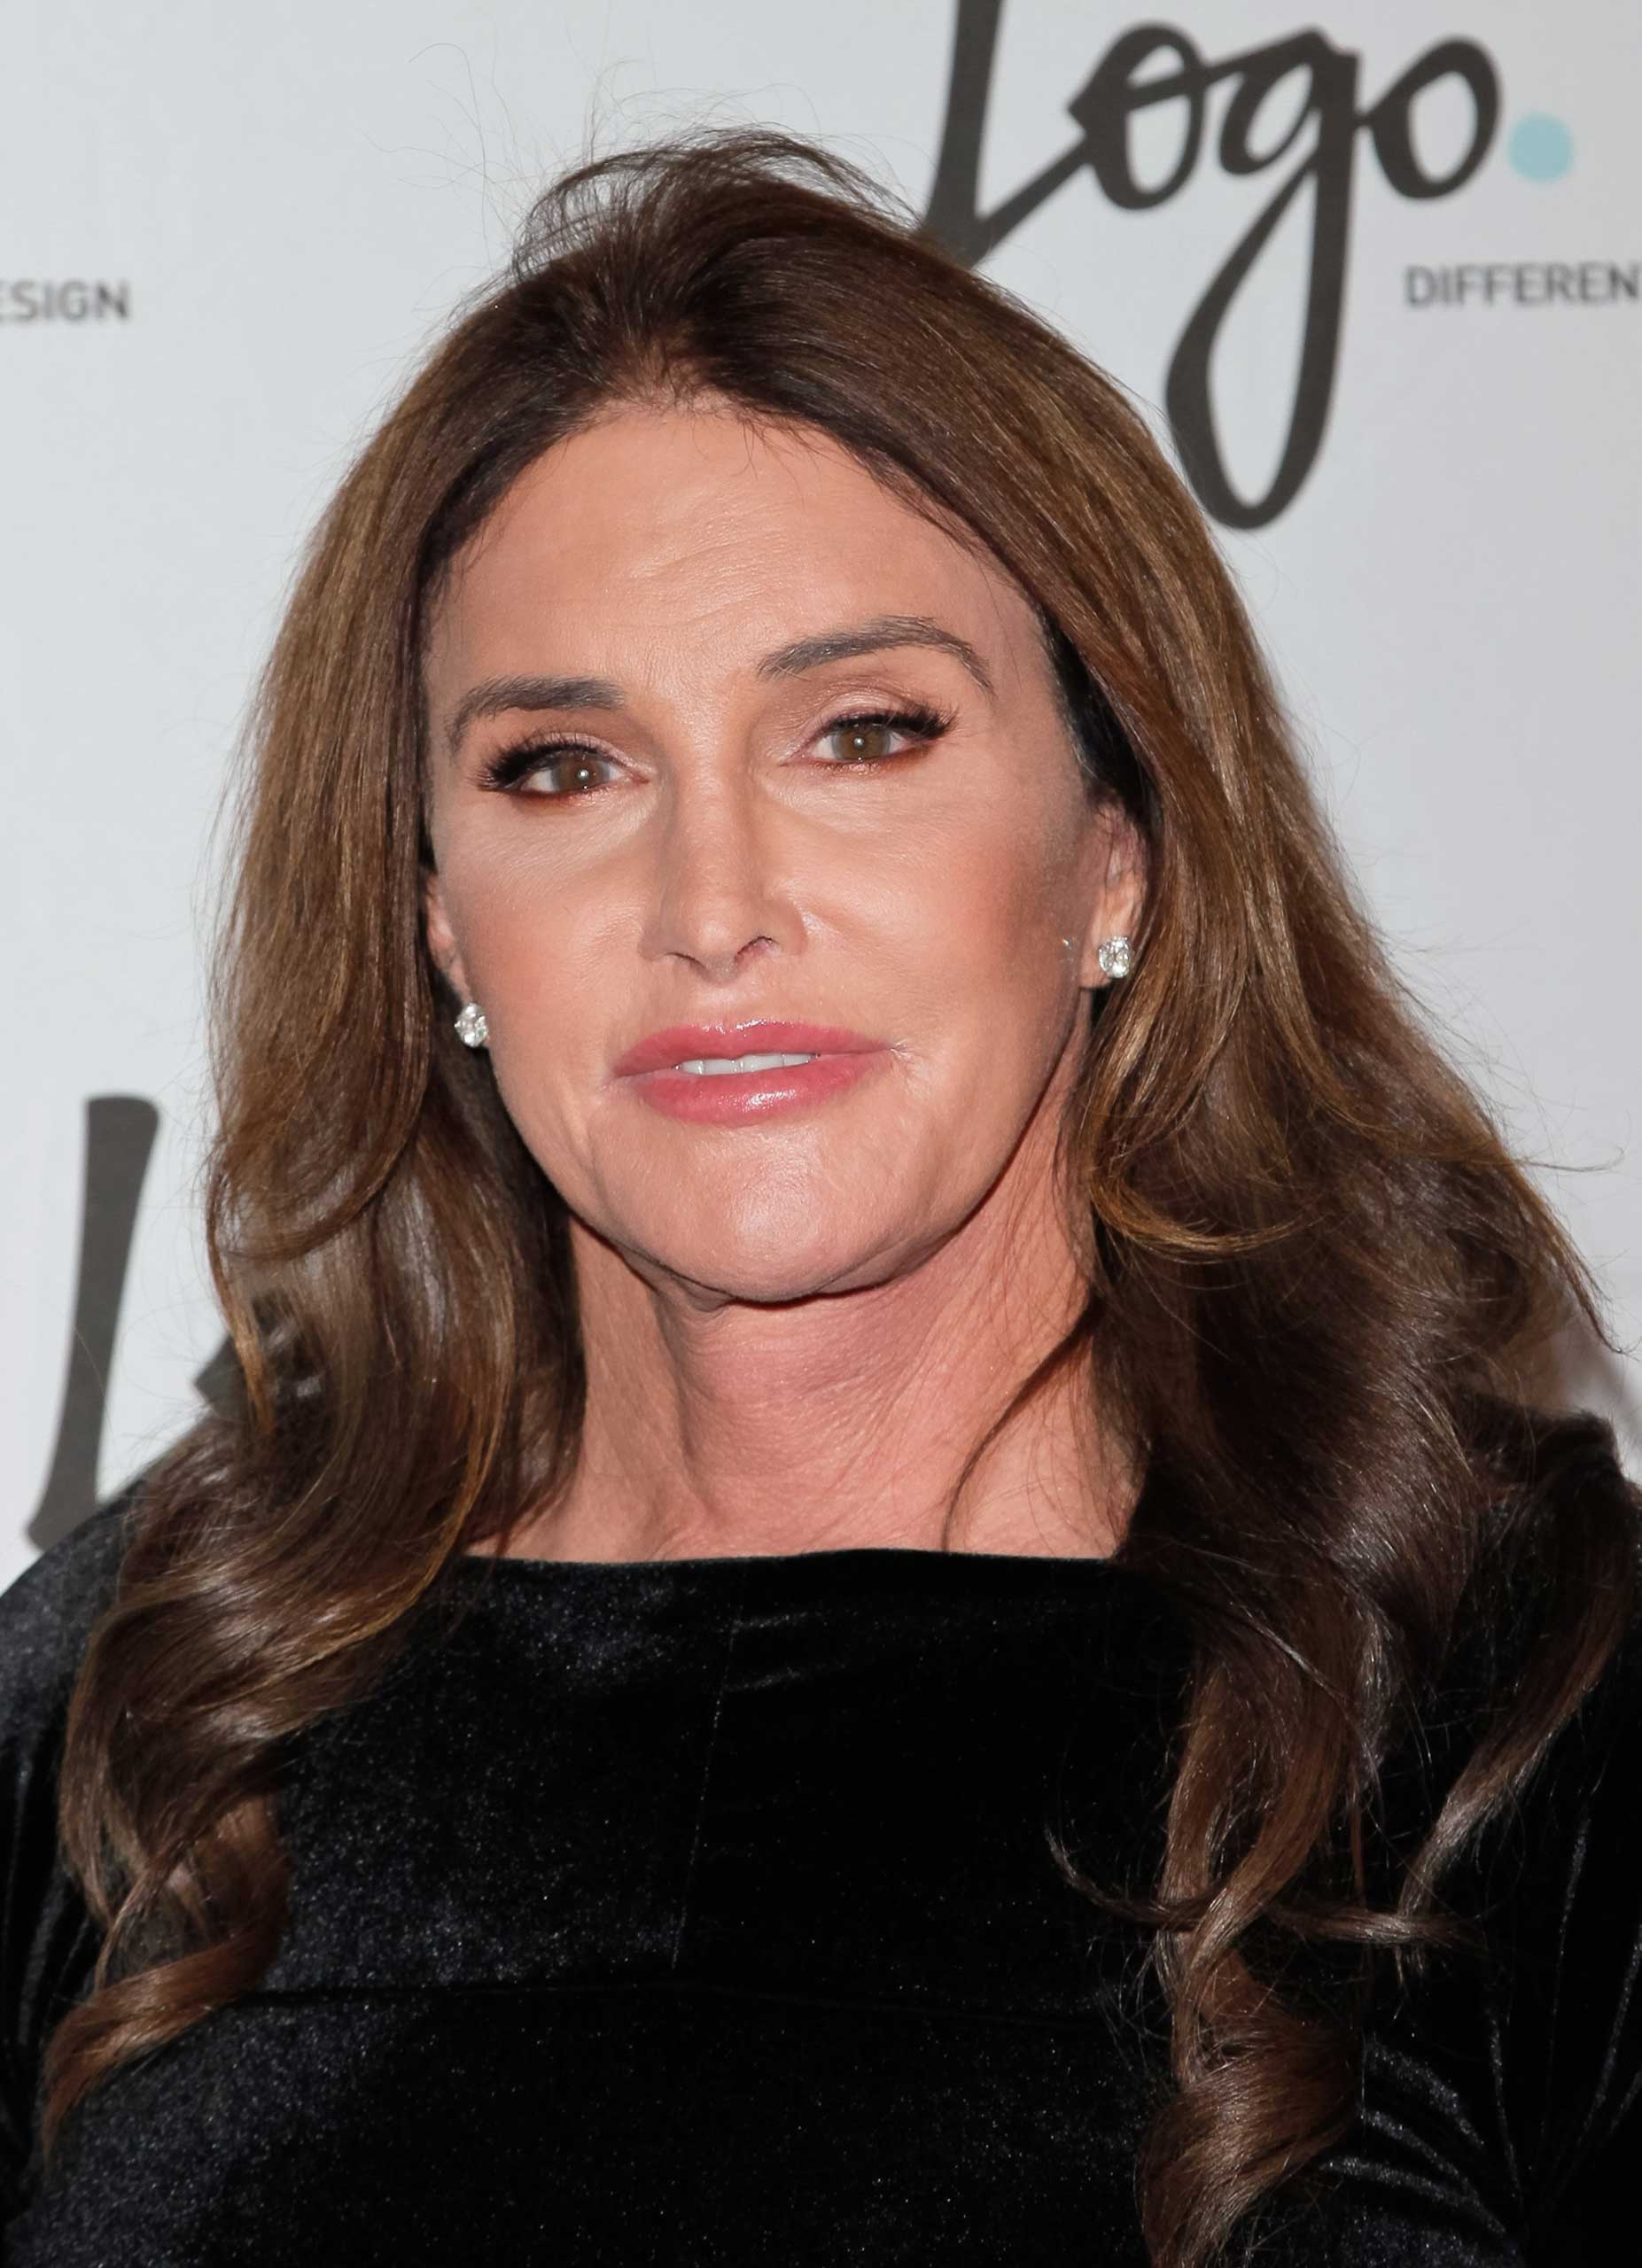 Caitlyn Jenner attends Logo TV's 'Beautiful As I Want To Be' web series launch party at The Standard Hotel in Los Angeles, on Oct. 27, 2015.